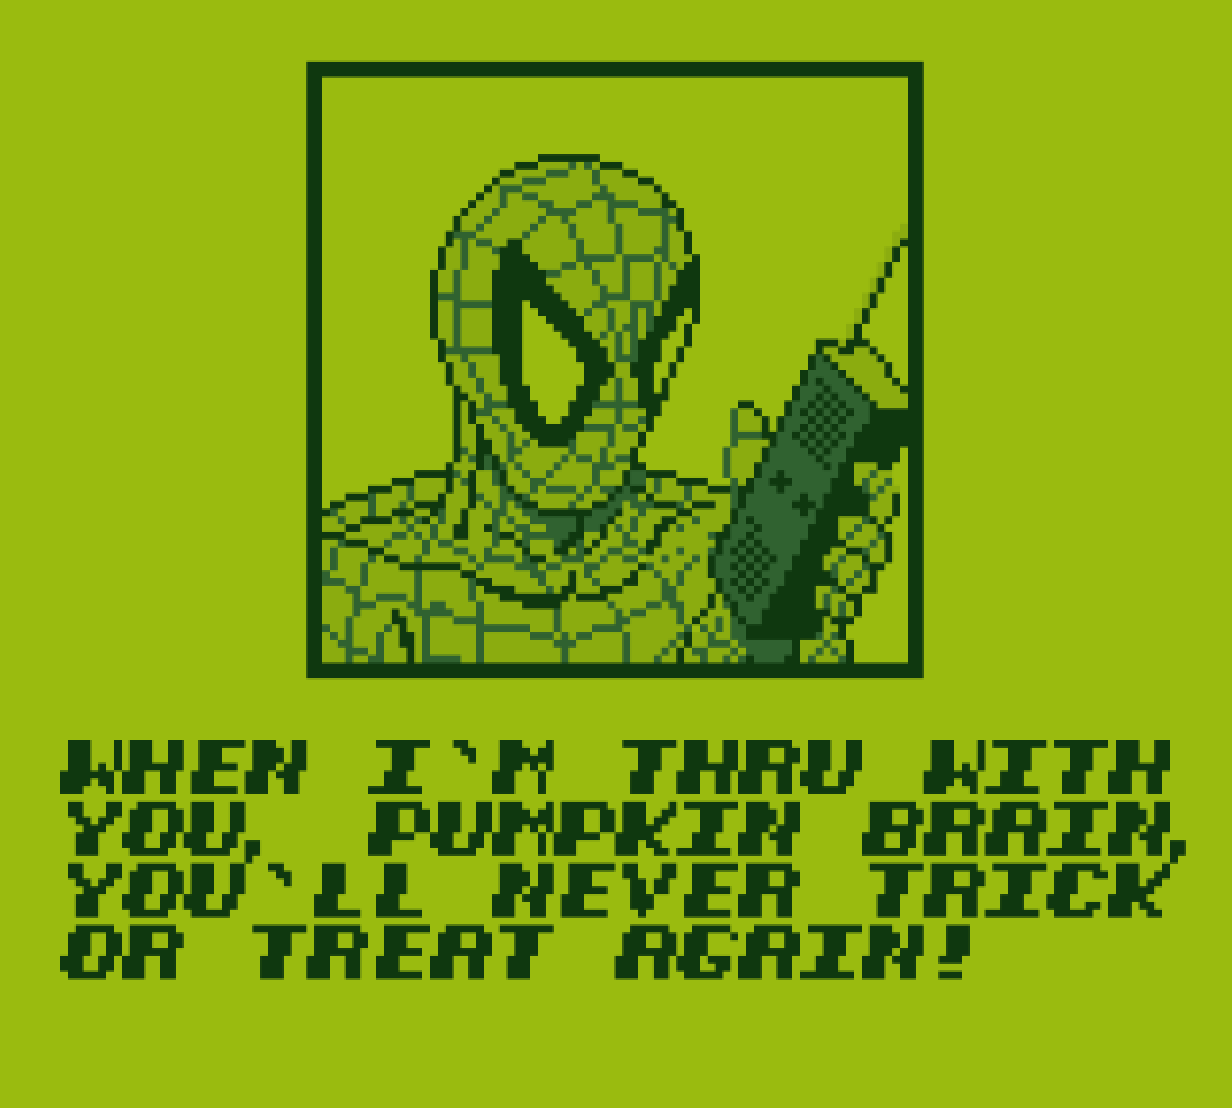 Spidey's looking pretty respectable.